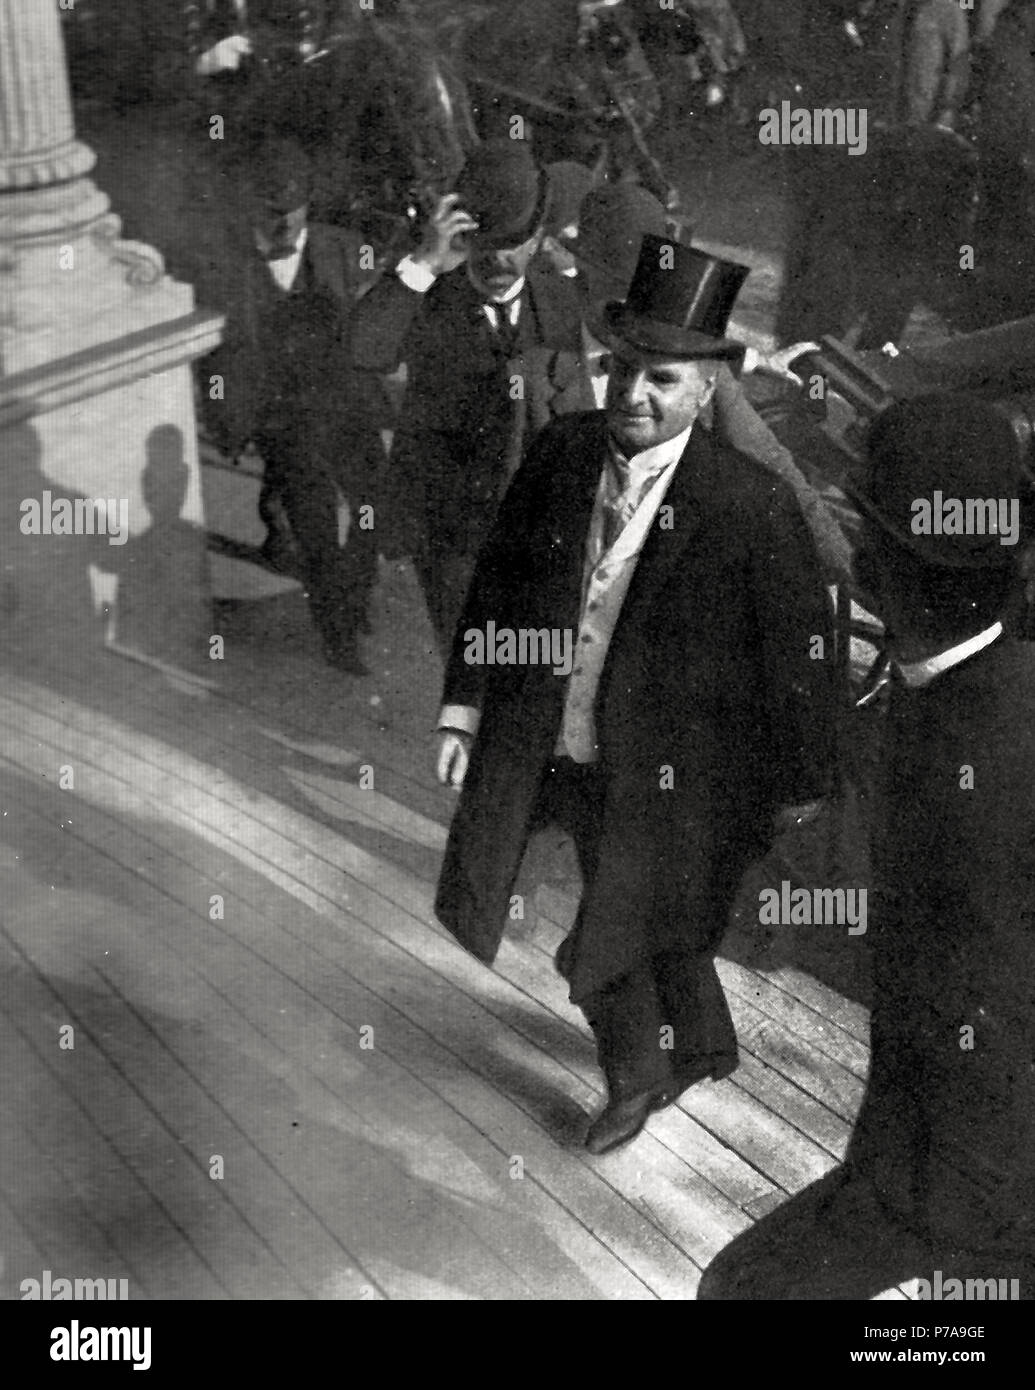 One of the last photographs of the late President McKinley. Taken as he was ascending the steps of the Temple of Music, September 6, 1901. - Stock Image